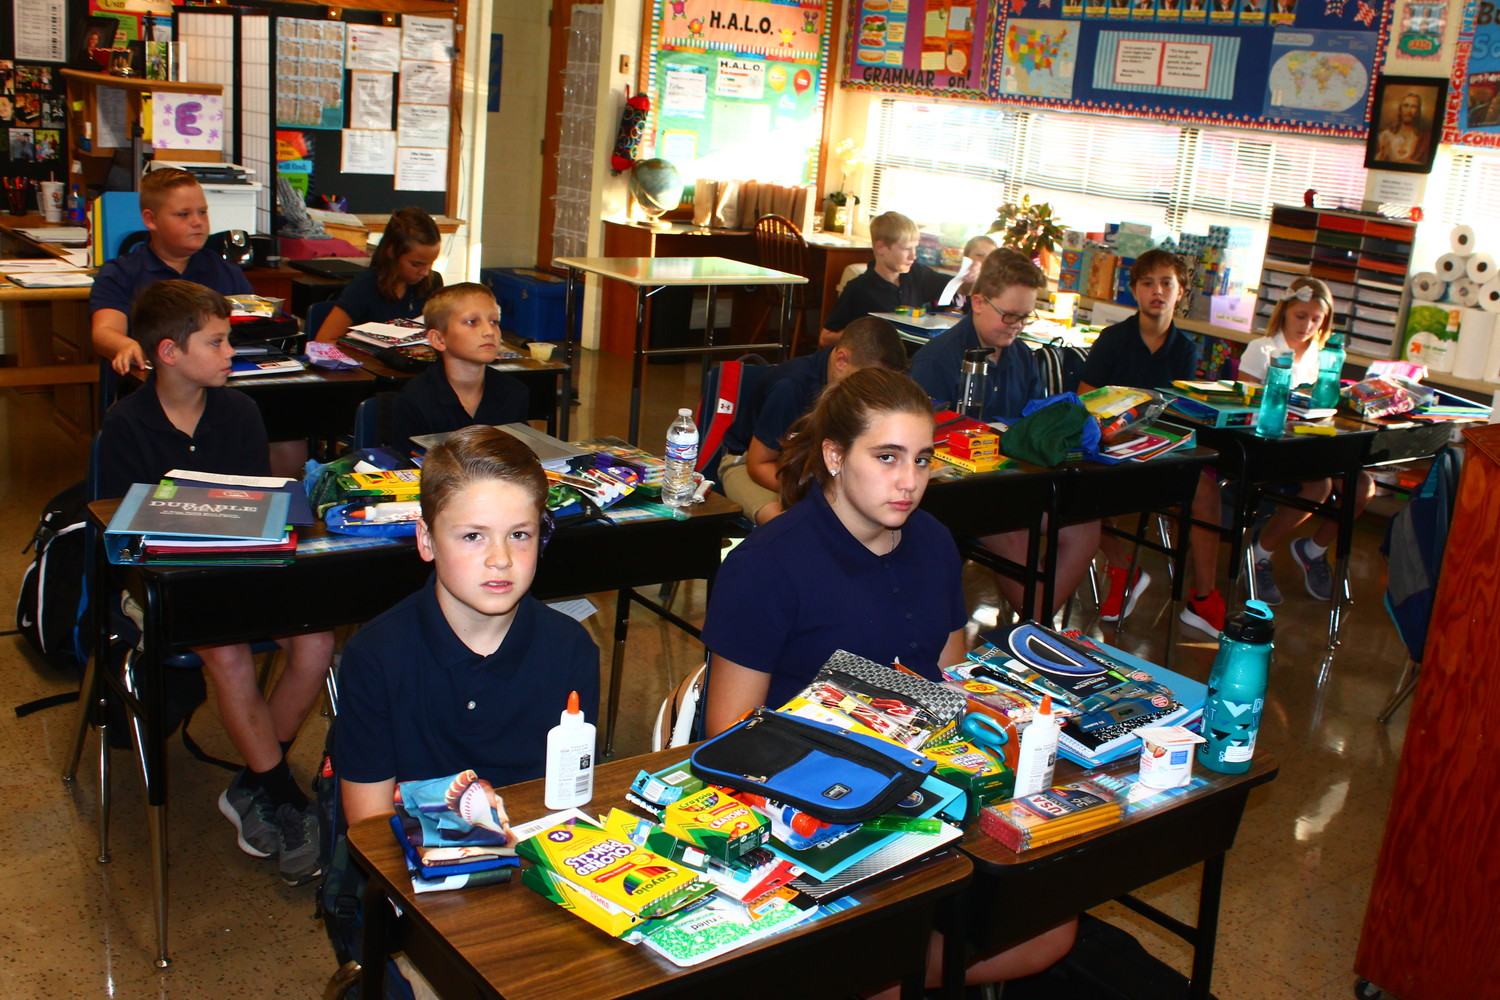 Students of Immaculate Conception School in Jefferson City make the transition from summer to school.